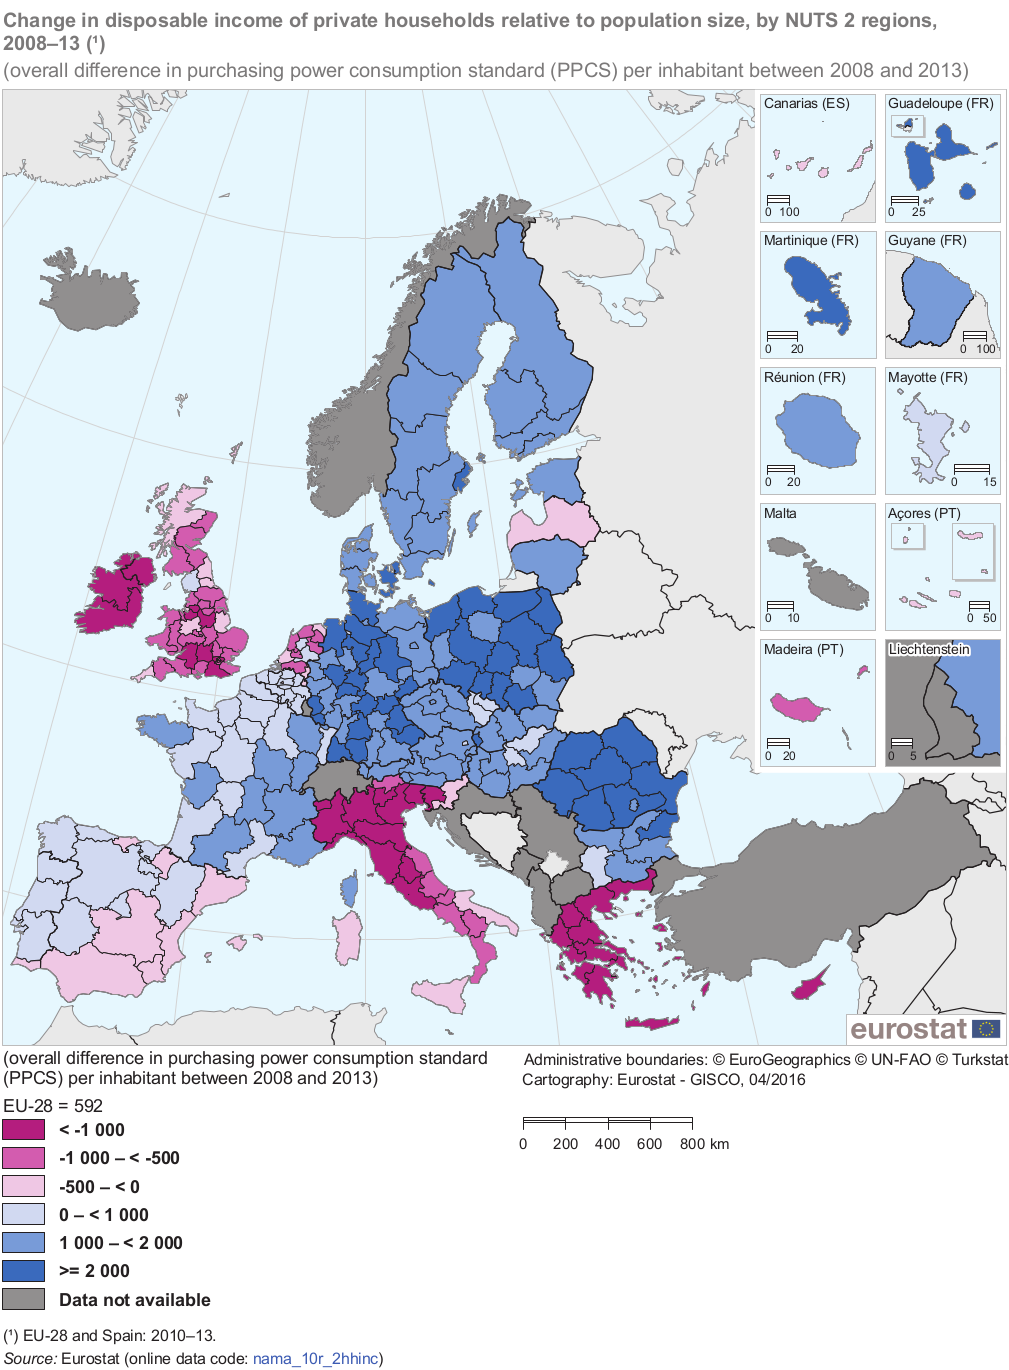 http://ec.europa.eu/eurostat/statistics-explained/images/d/d8/Change_in_disposable_income_of_private_households_relative_to_population_size%2C_by_NUTS_2_regions%2C_2008%E2%80%9313_%28%C2%B9%29_%28overall_difference_in_purchasing_power_consumption_standard_%28PPCS%29_per_inhabitant_between_2008_and_2013%29_RYB2016.png